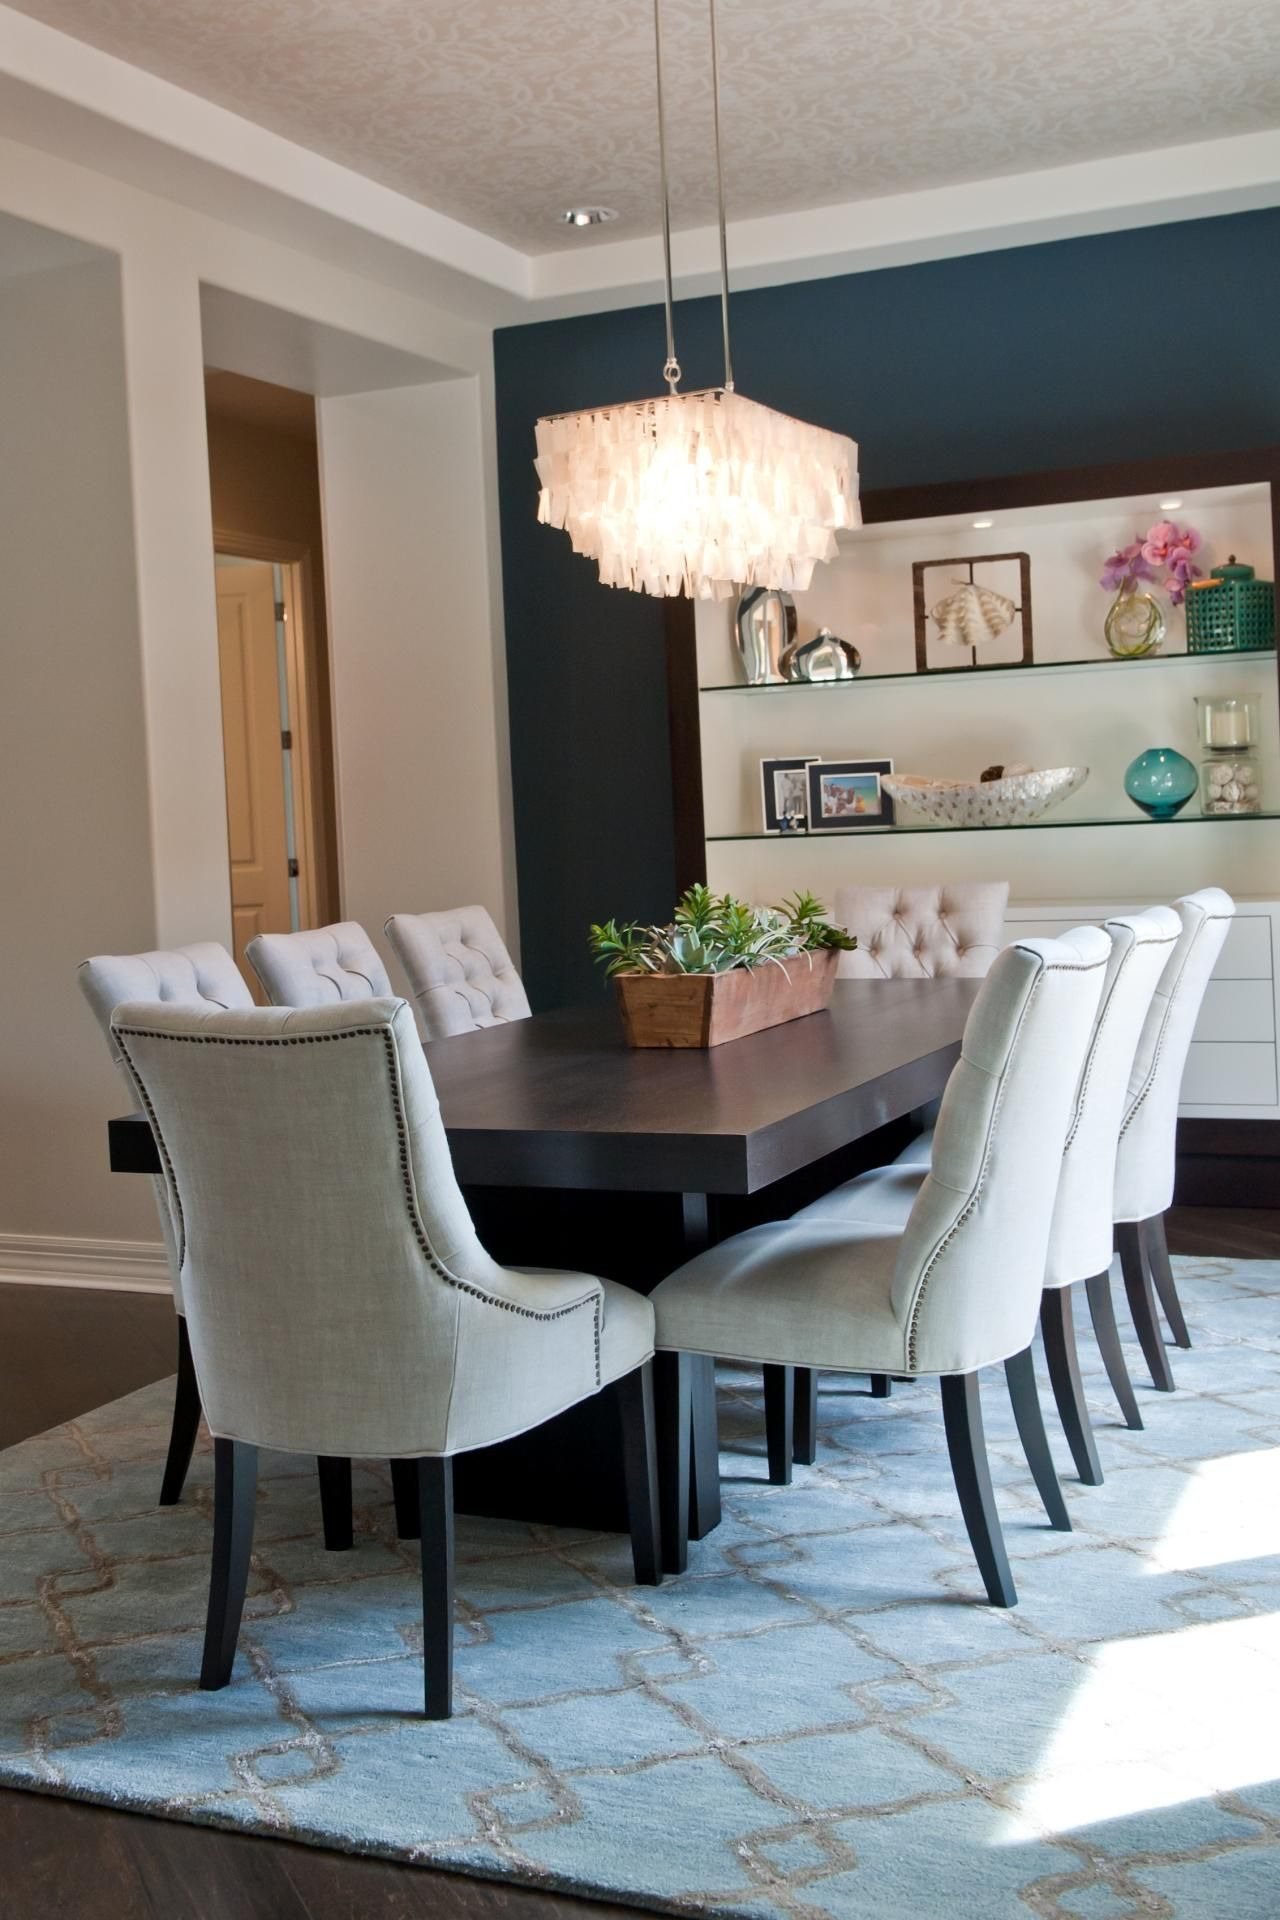 Eight offwhite tufted chairs surround a dark wood table